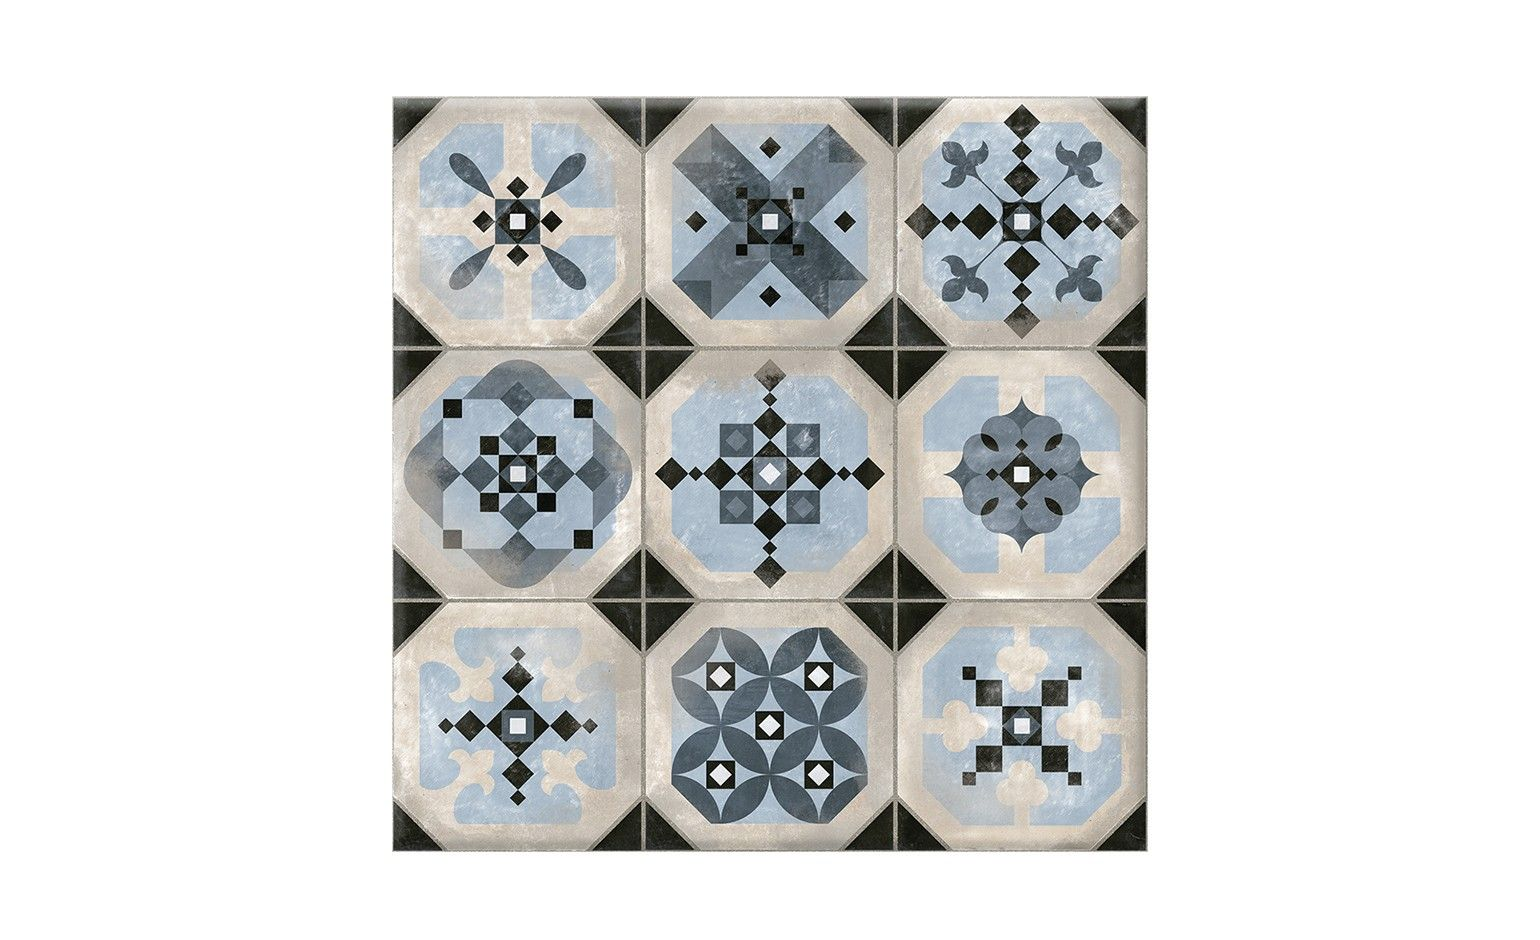 Carrelage 9decors 4 Aspect Carreau Ciment Decor Dim 31 6 X 31 6 Cm Imitation Carreaux De Ciment Carrelage Et Carreaux Ciment